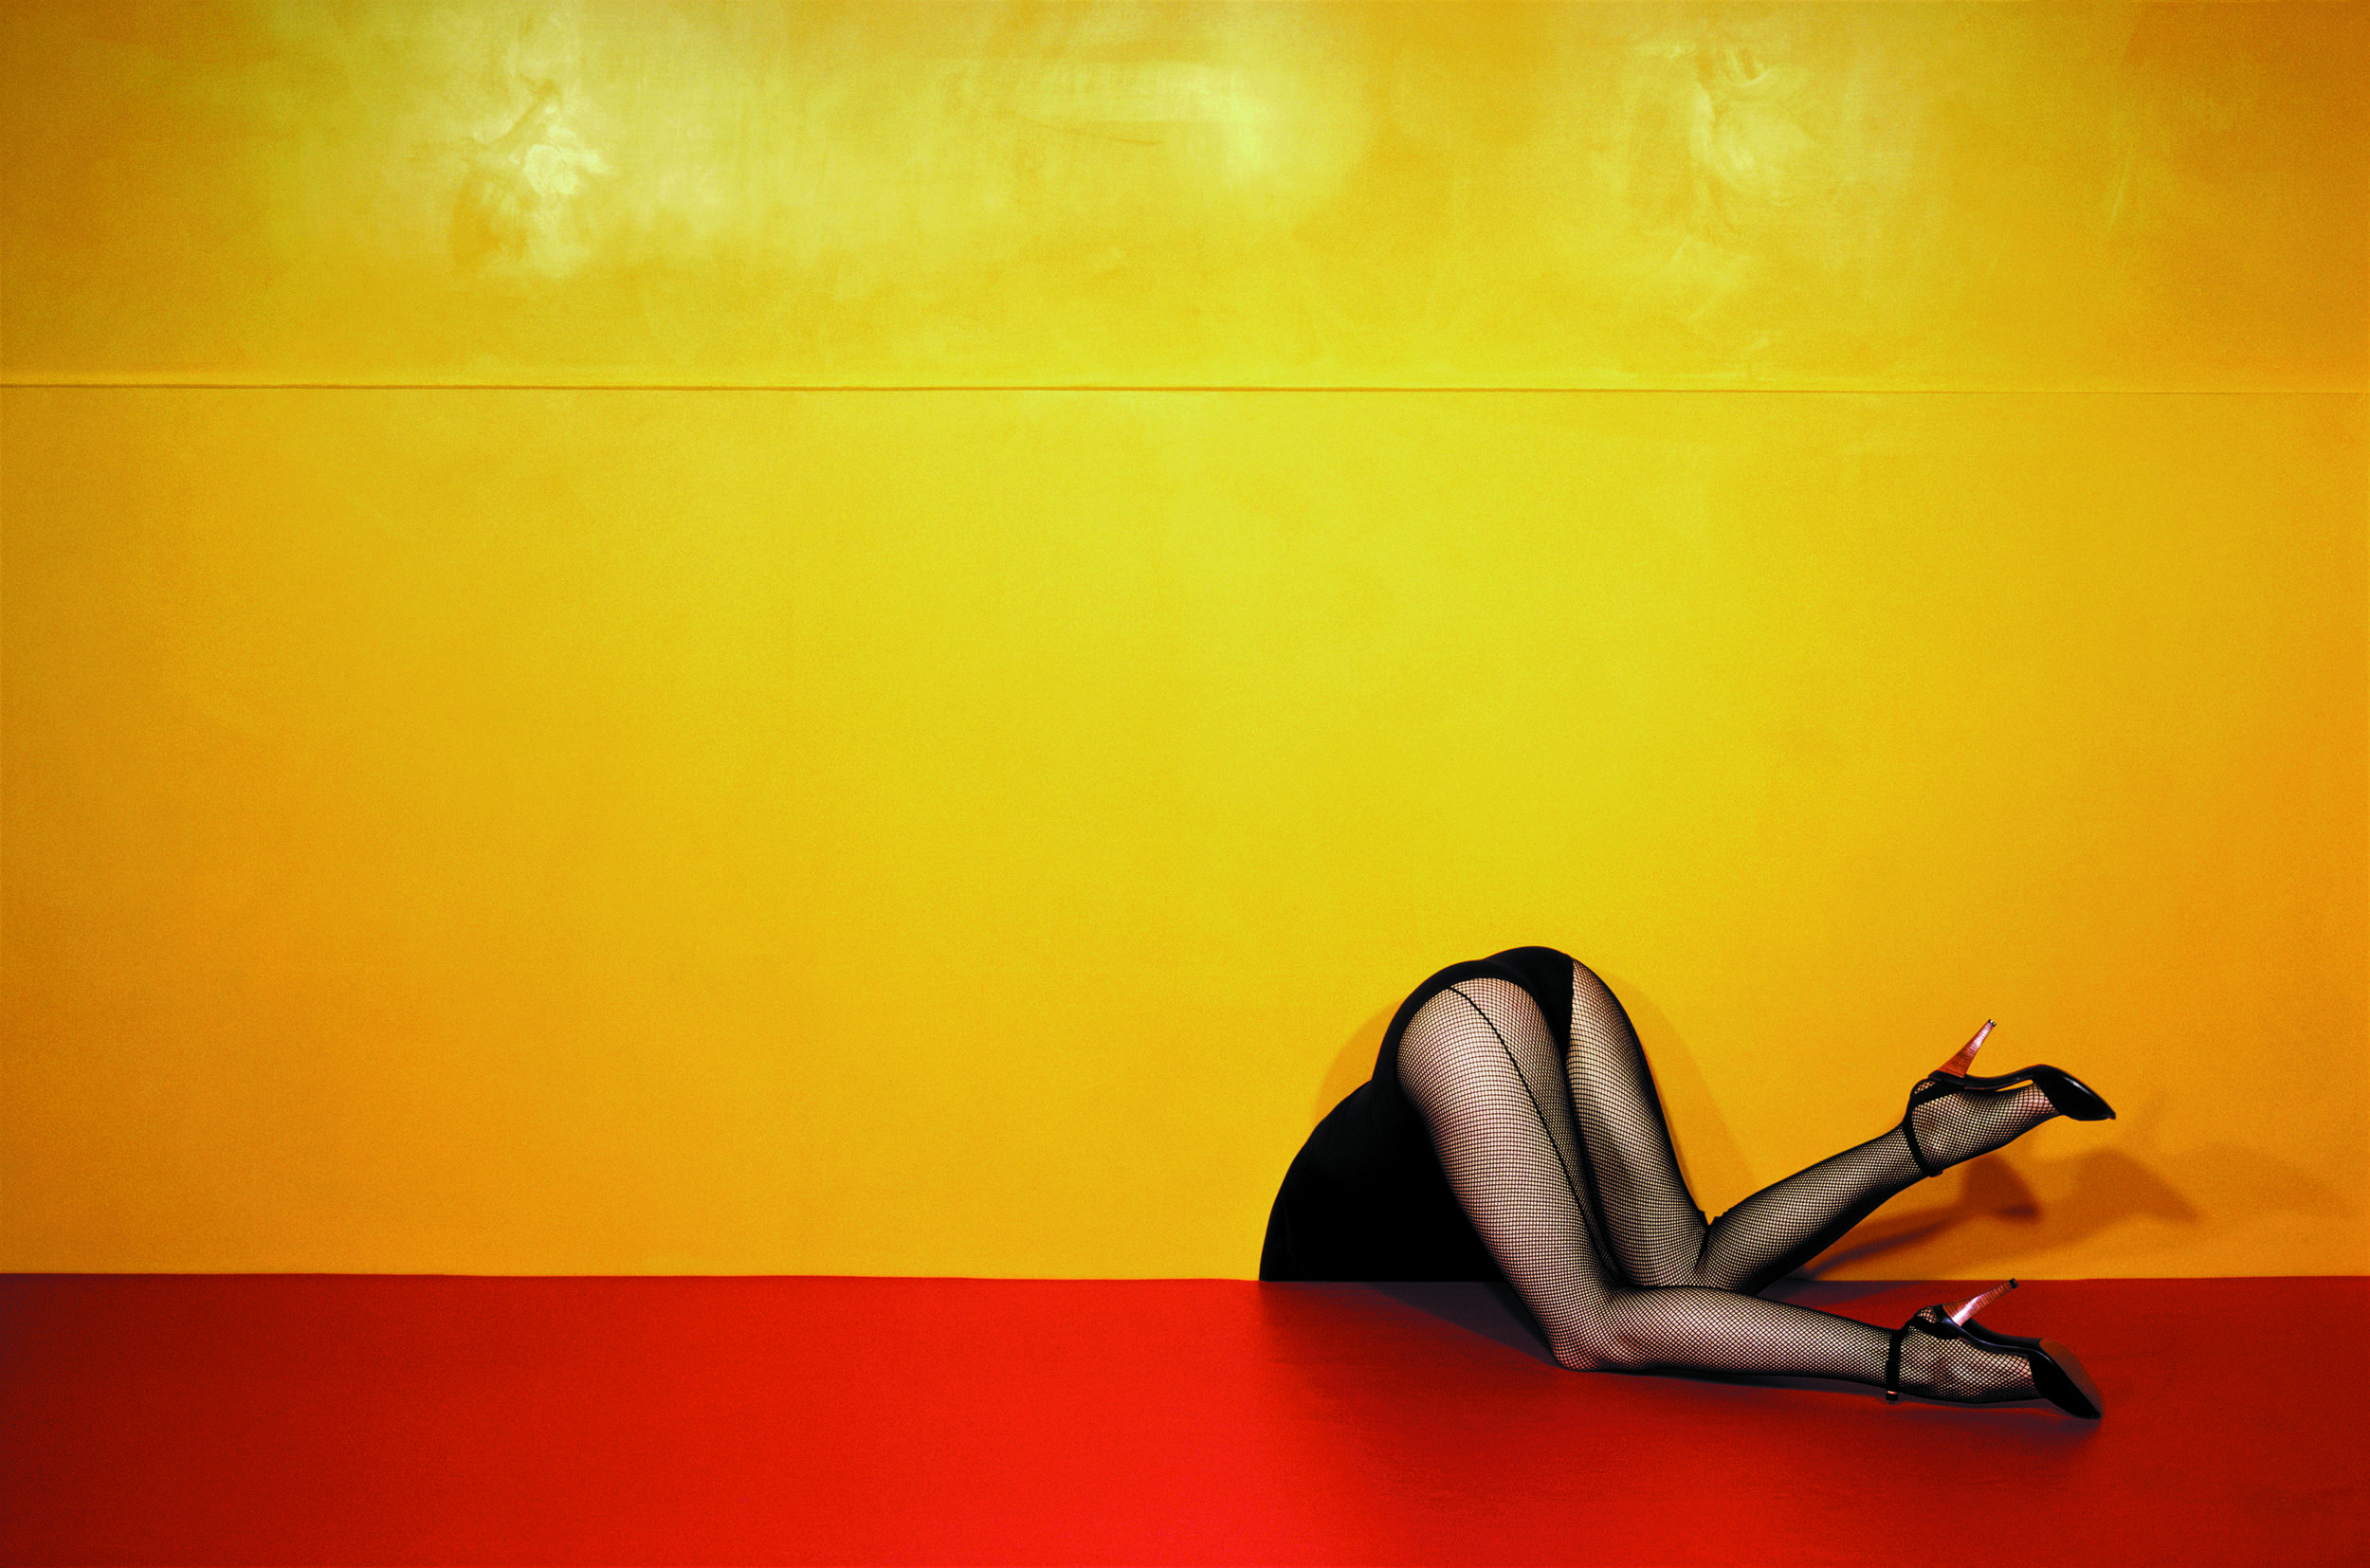 Guy Bourdin exhibition and book design - Exhibition and book design for an exhibitionof renowned photographer Guy Bourdin at Somerset House.